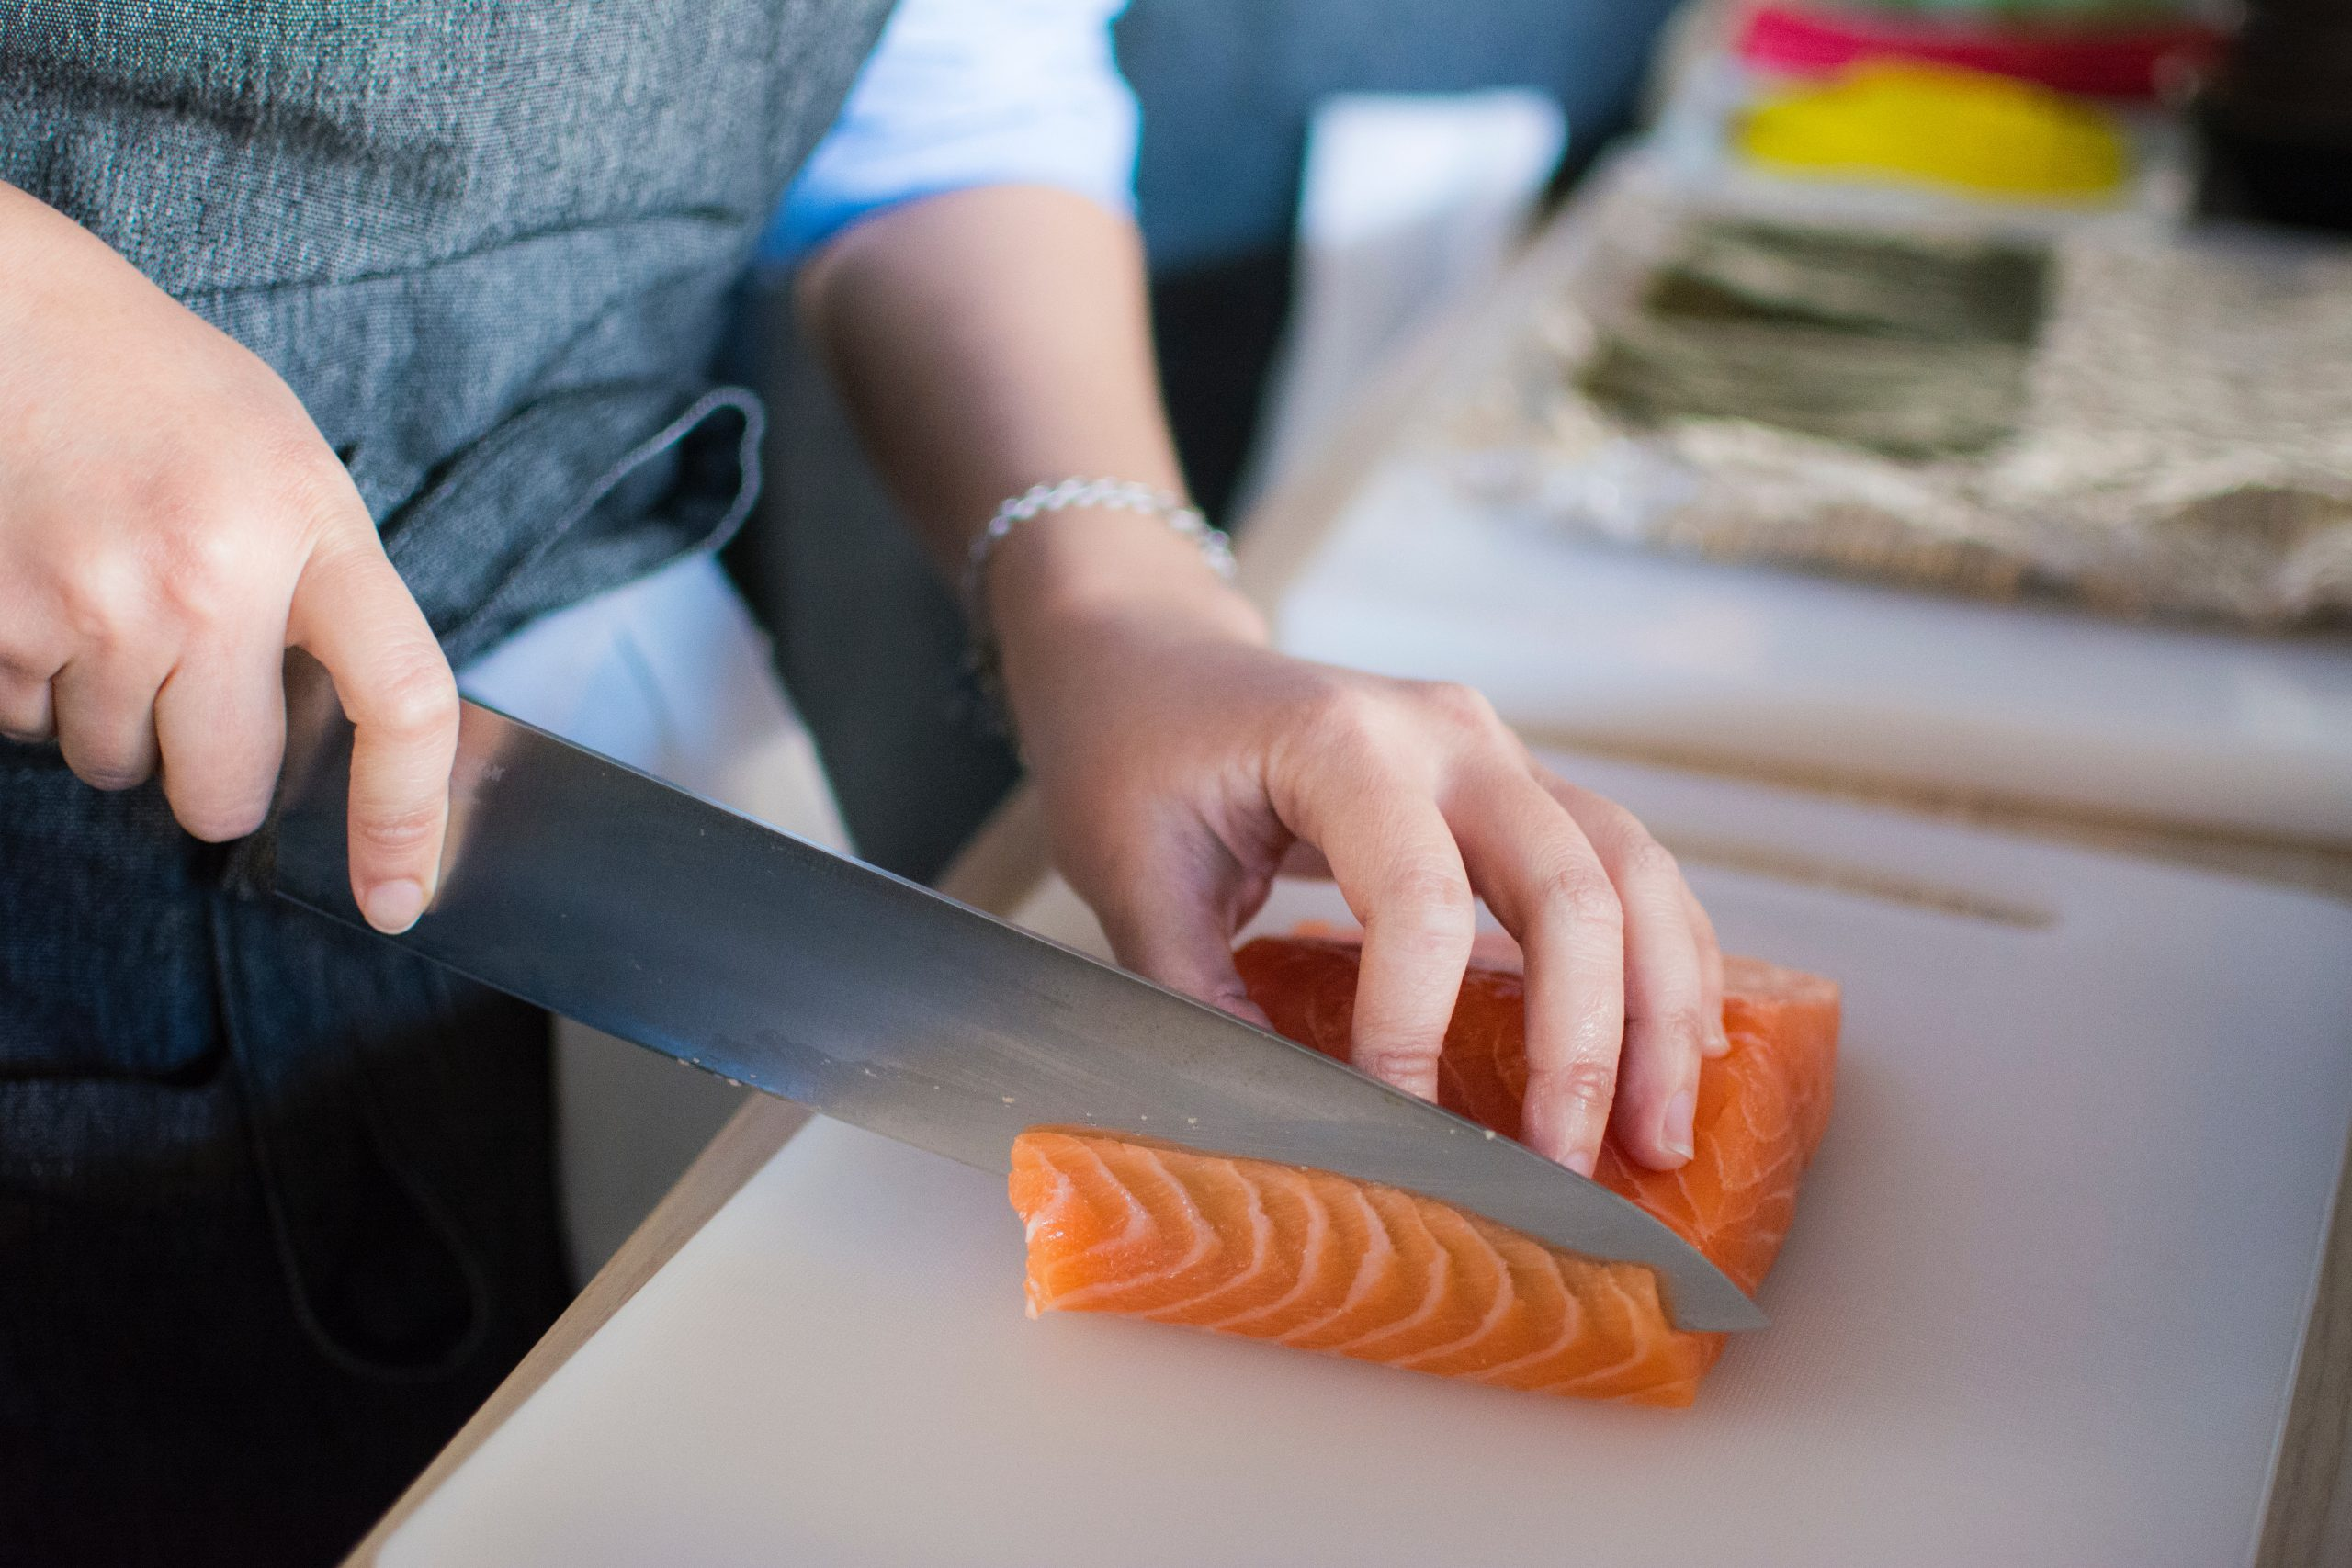 Know how to cook frozen salmon